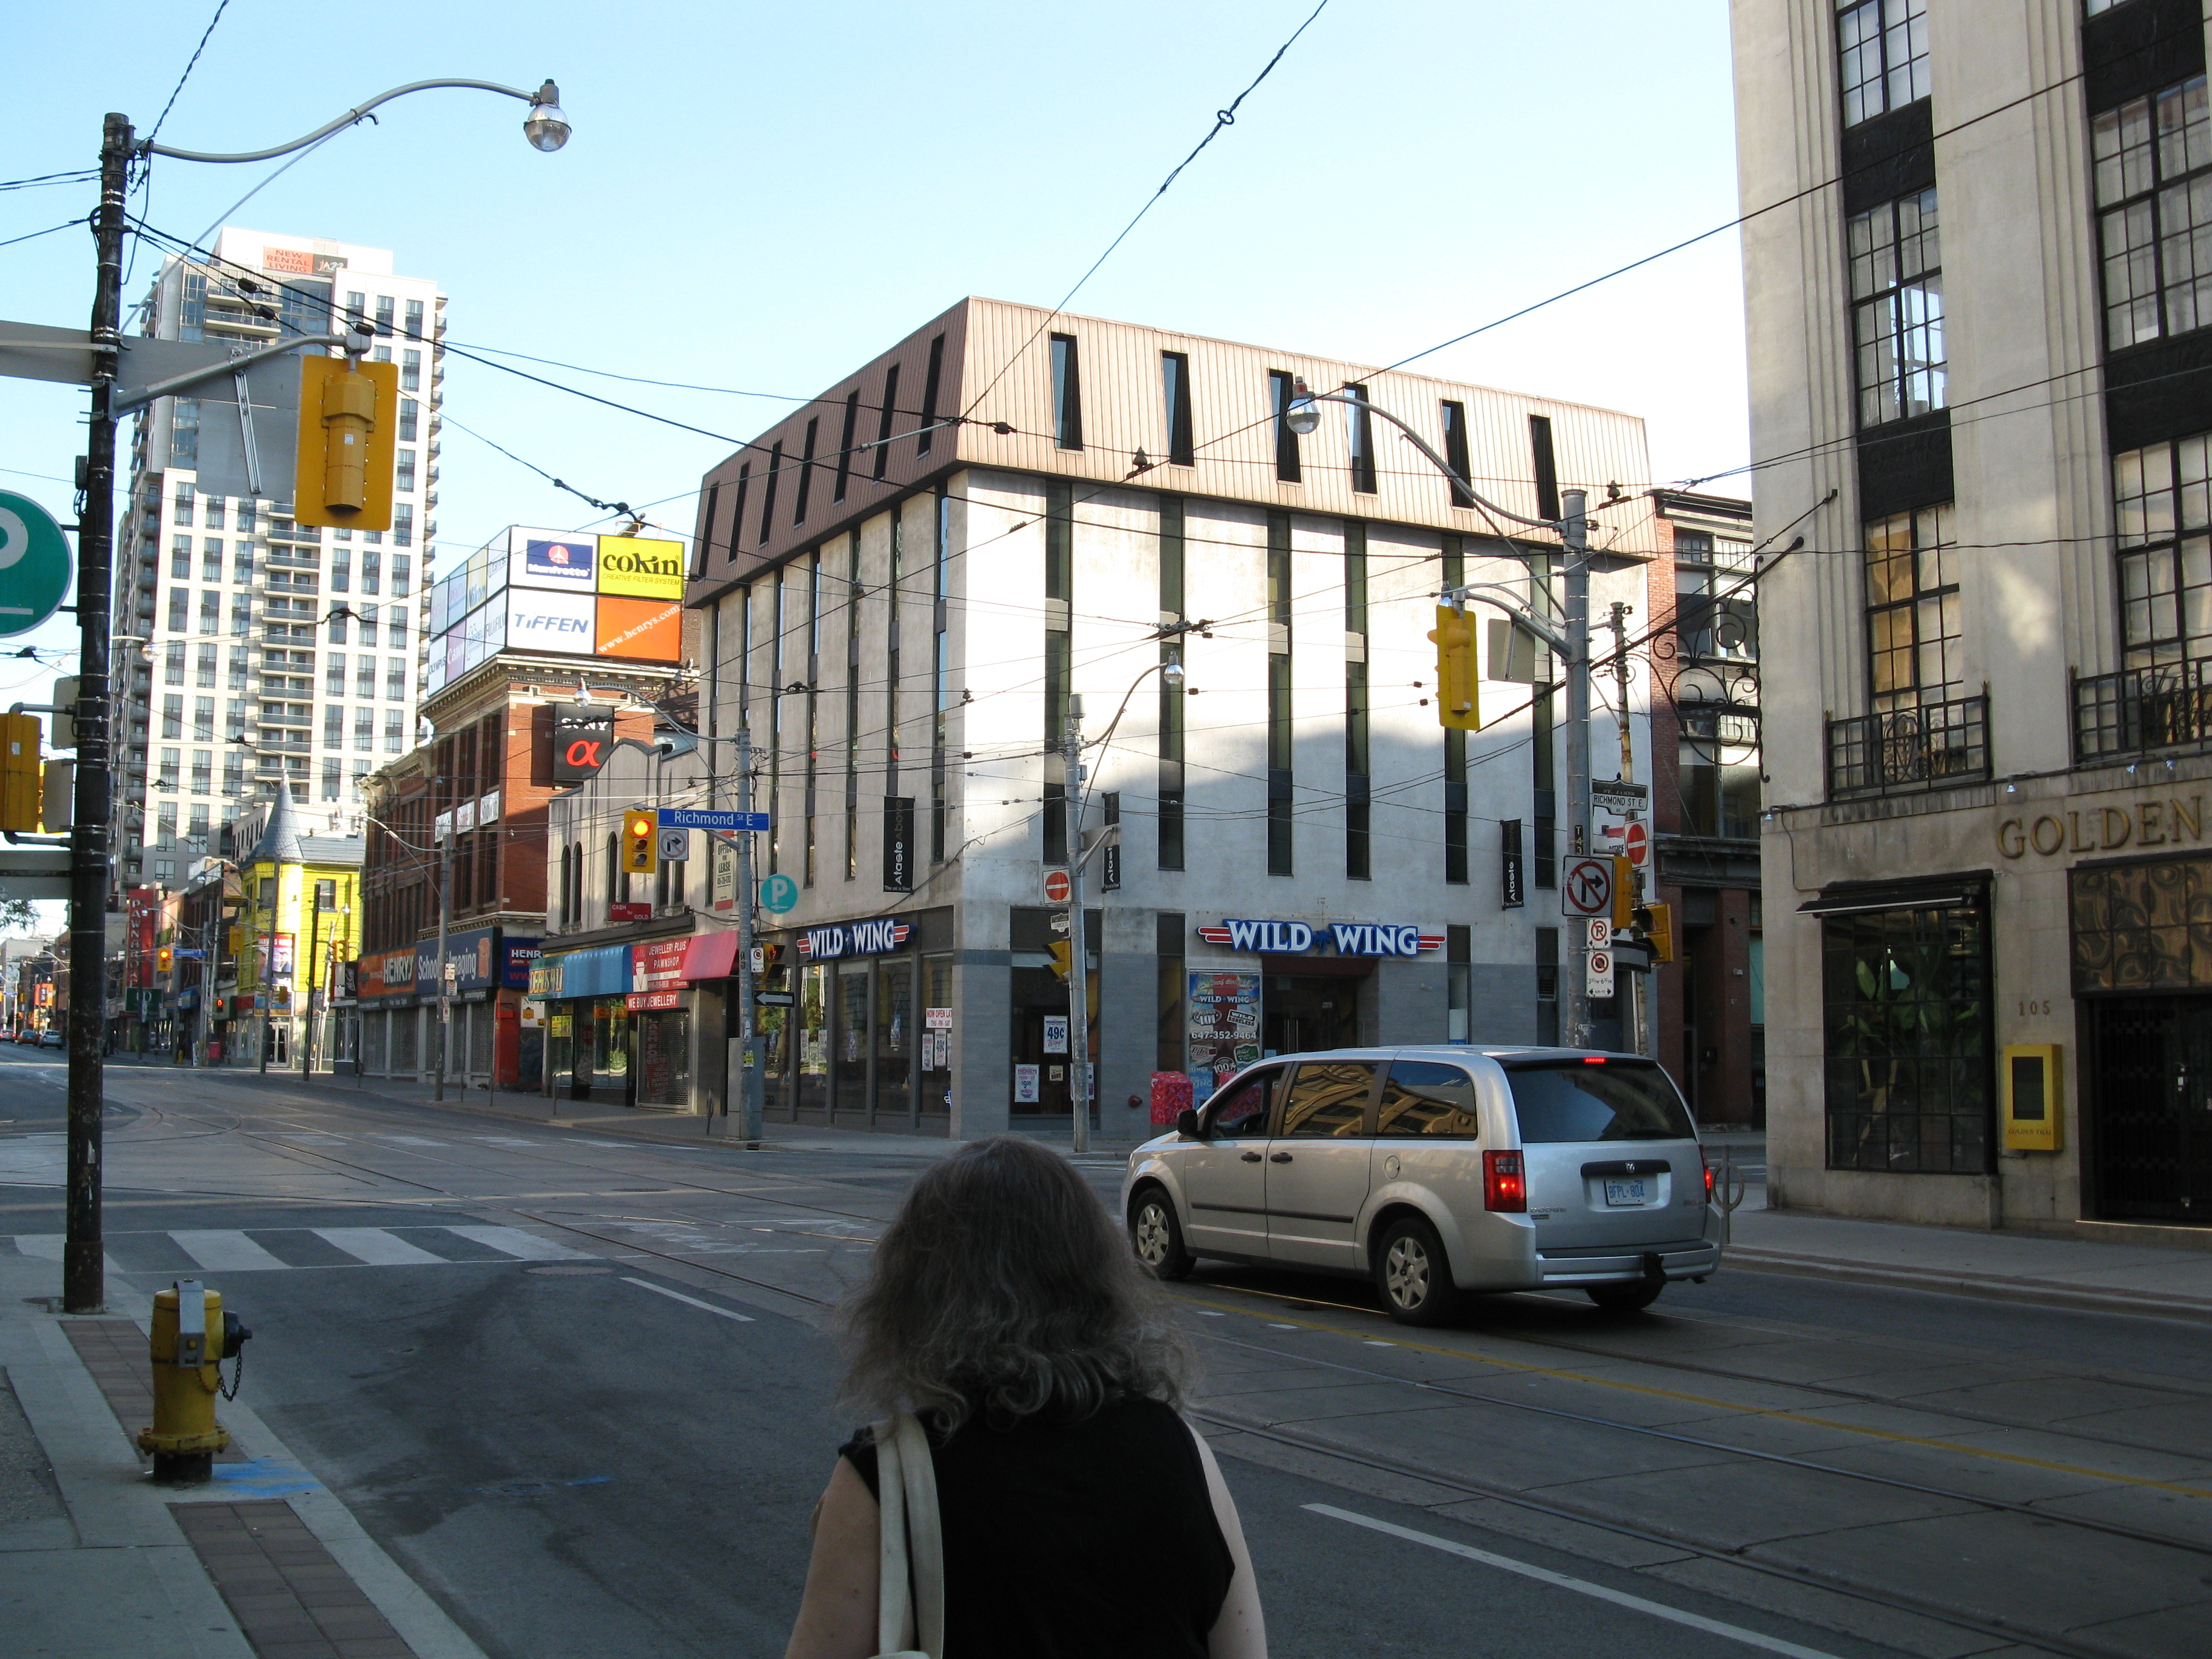 Church south of Queen.jpg, Architecture, Building, Intersection, Outdoor, HQ Photo